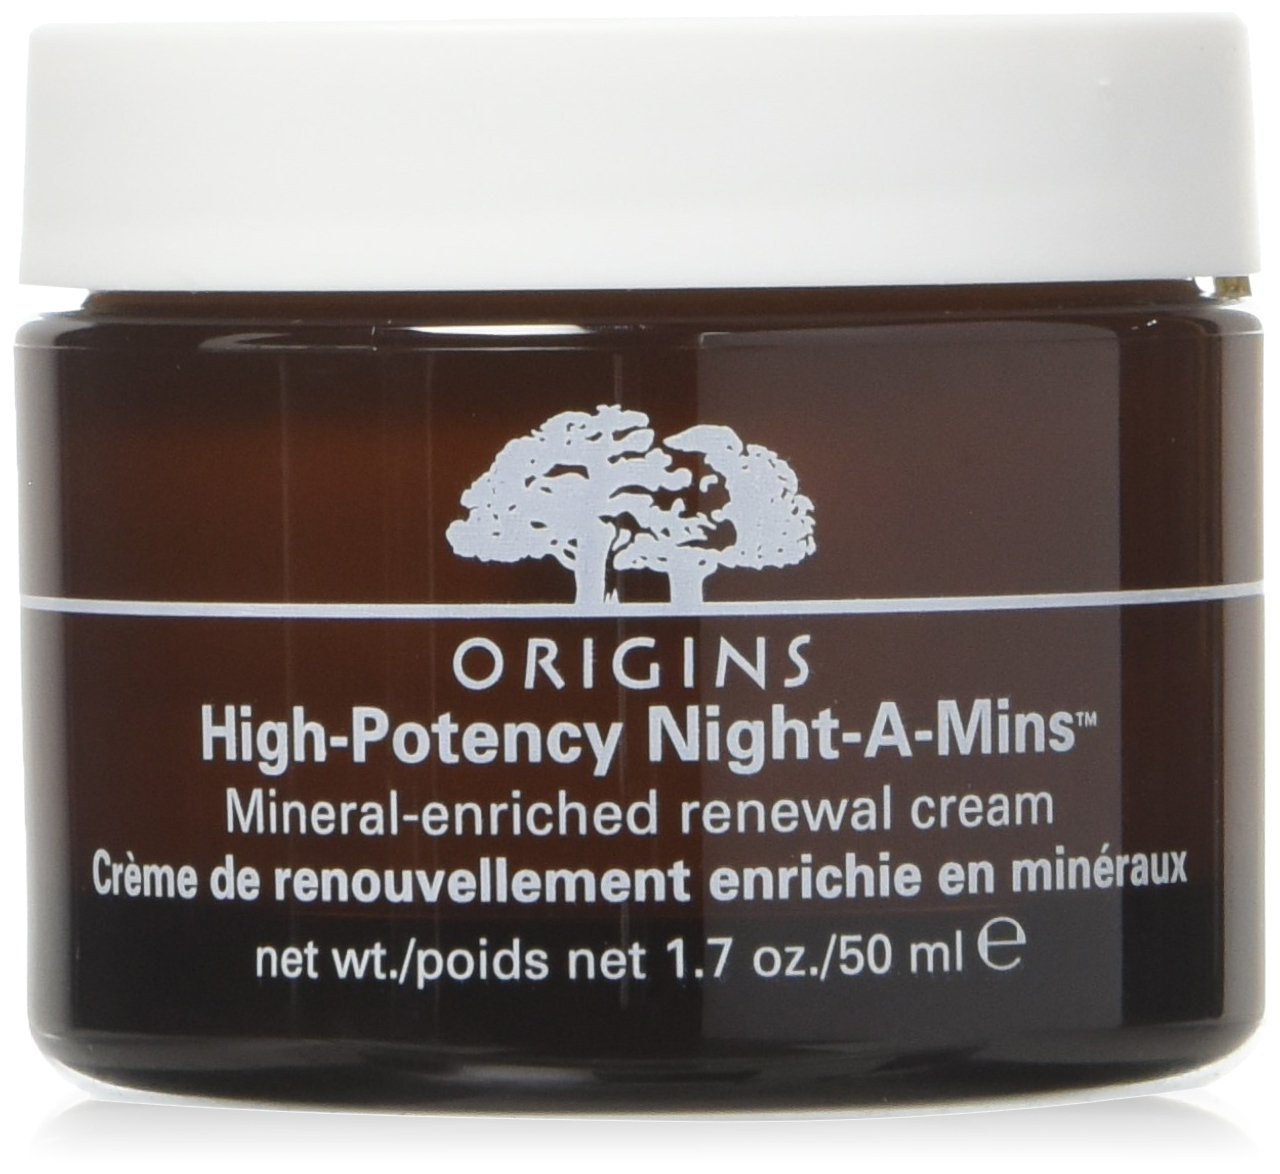 Origins High Potency Night-A-Mins Mineral-Enriched Moisture Cream 1.7oz, 50ml